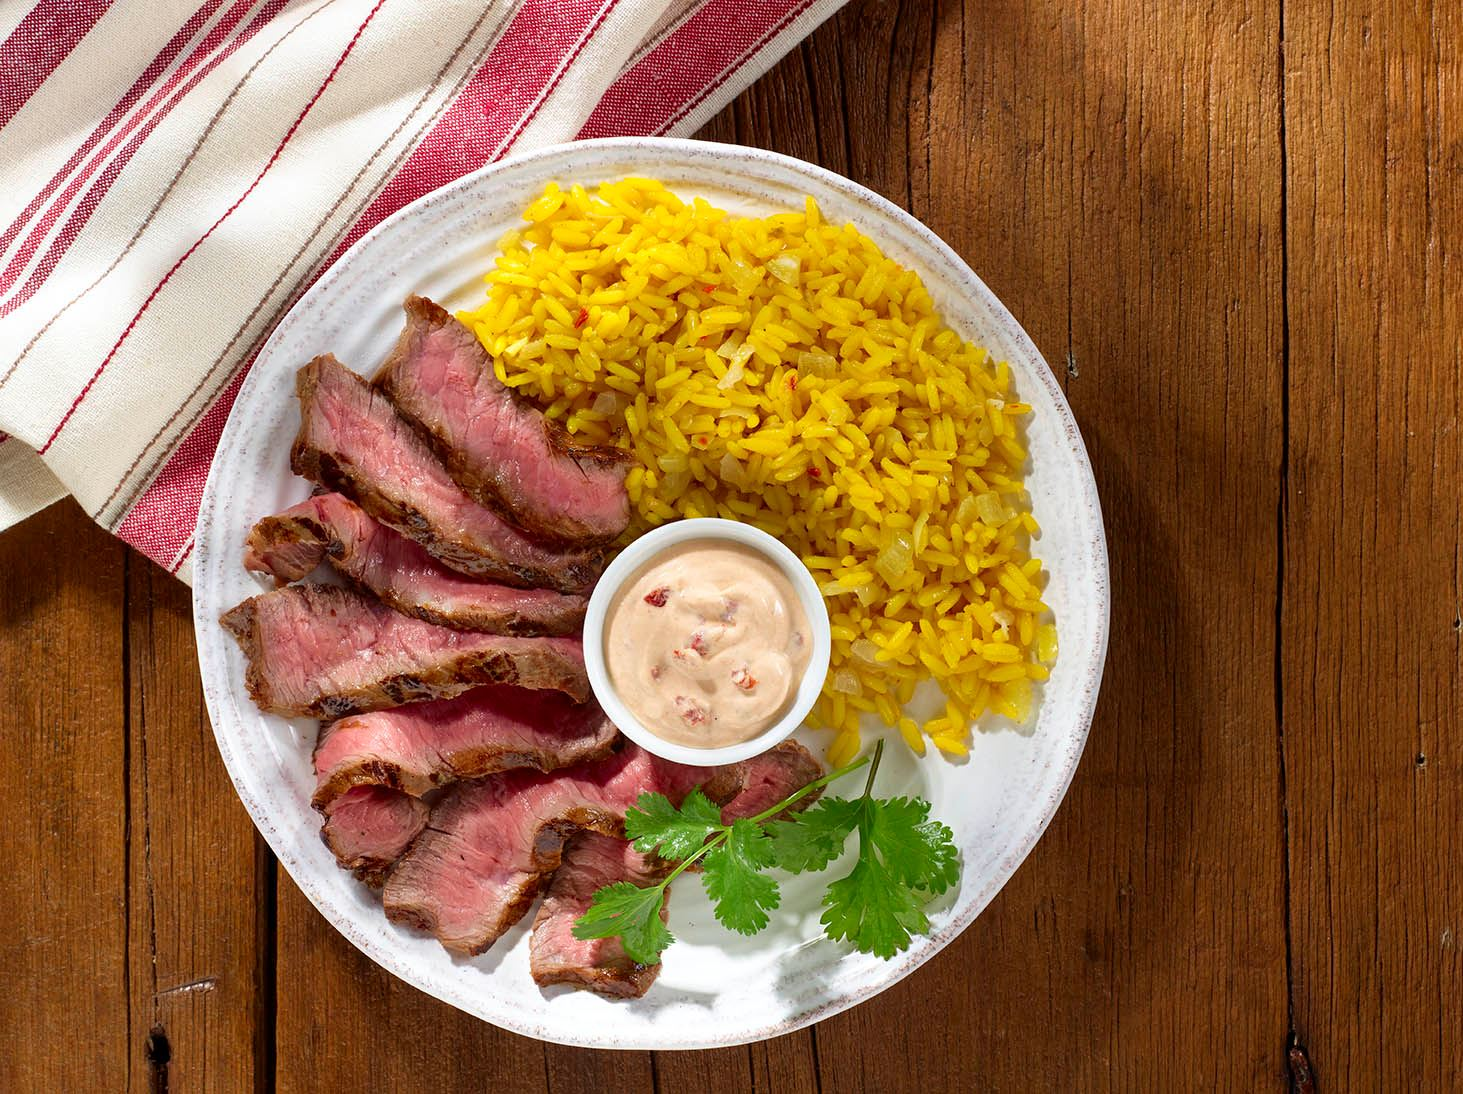 Chipotle-Spiced Steak with Garlic Yellow Rice